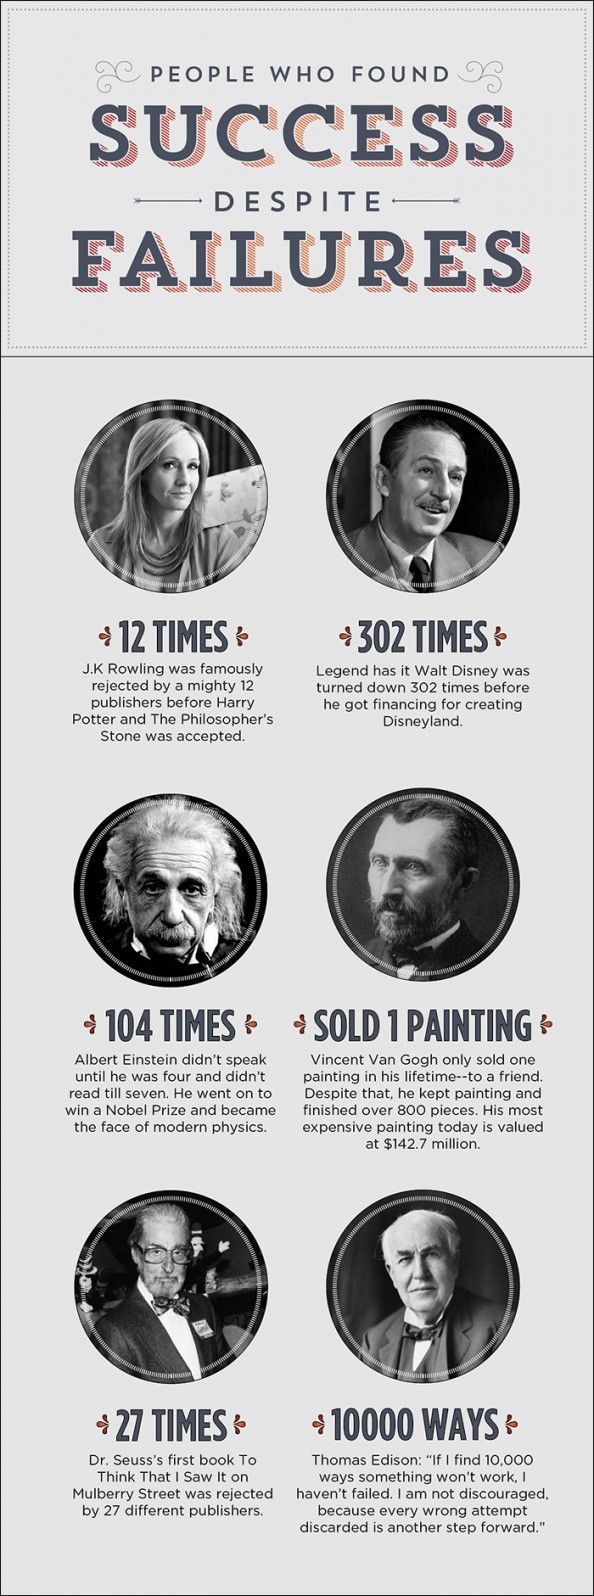 People Who Found Success Despite Failures.